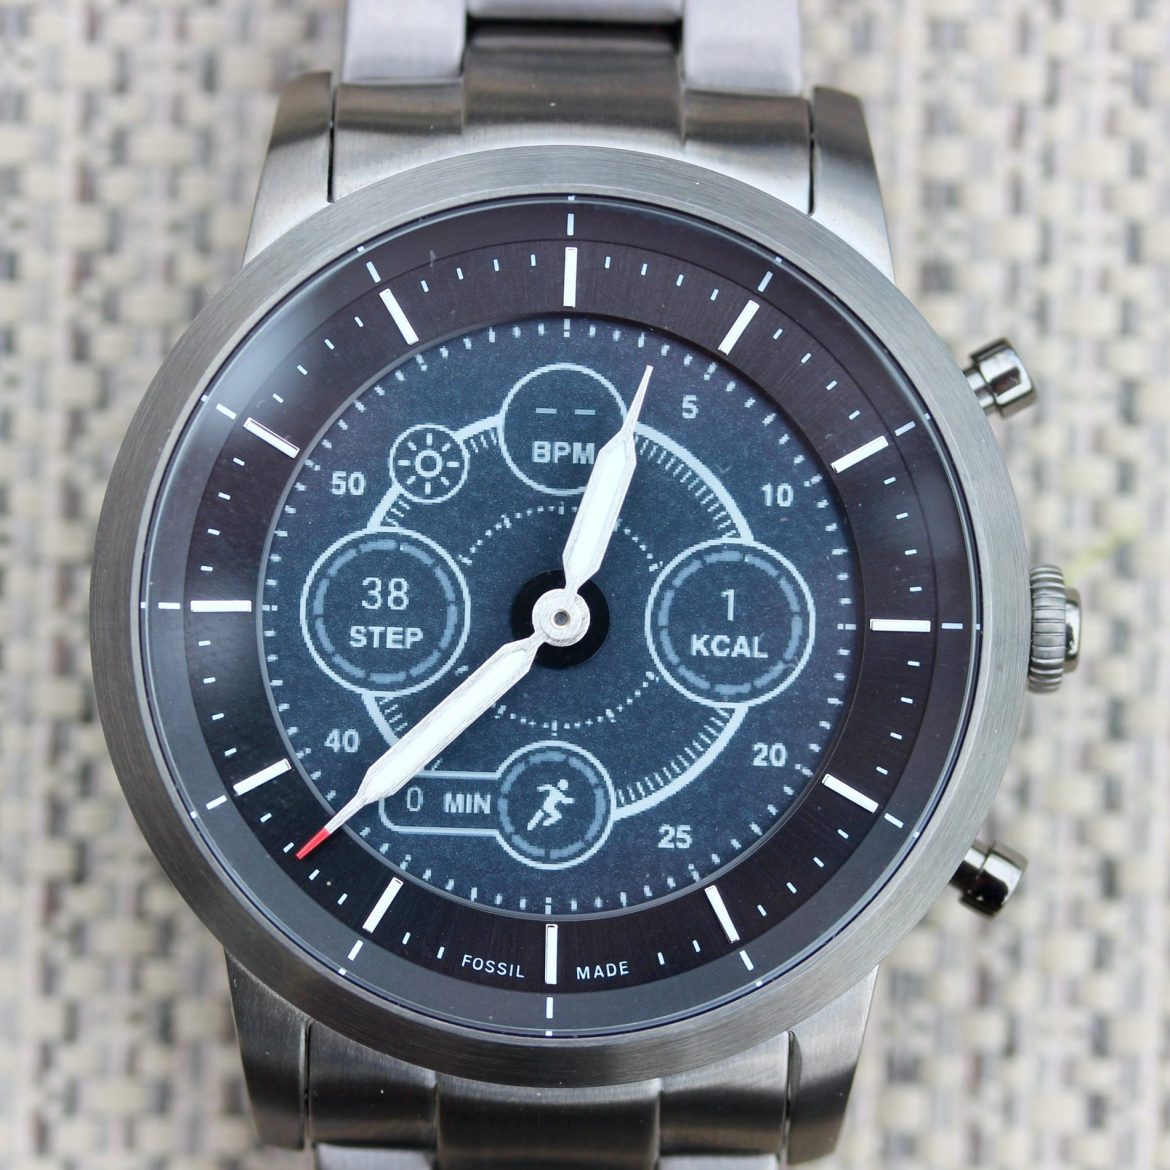 In Review: Fossil Collider Hybrid Smartwatch HR